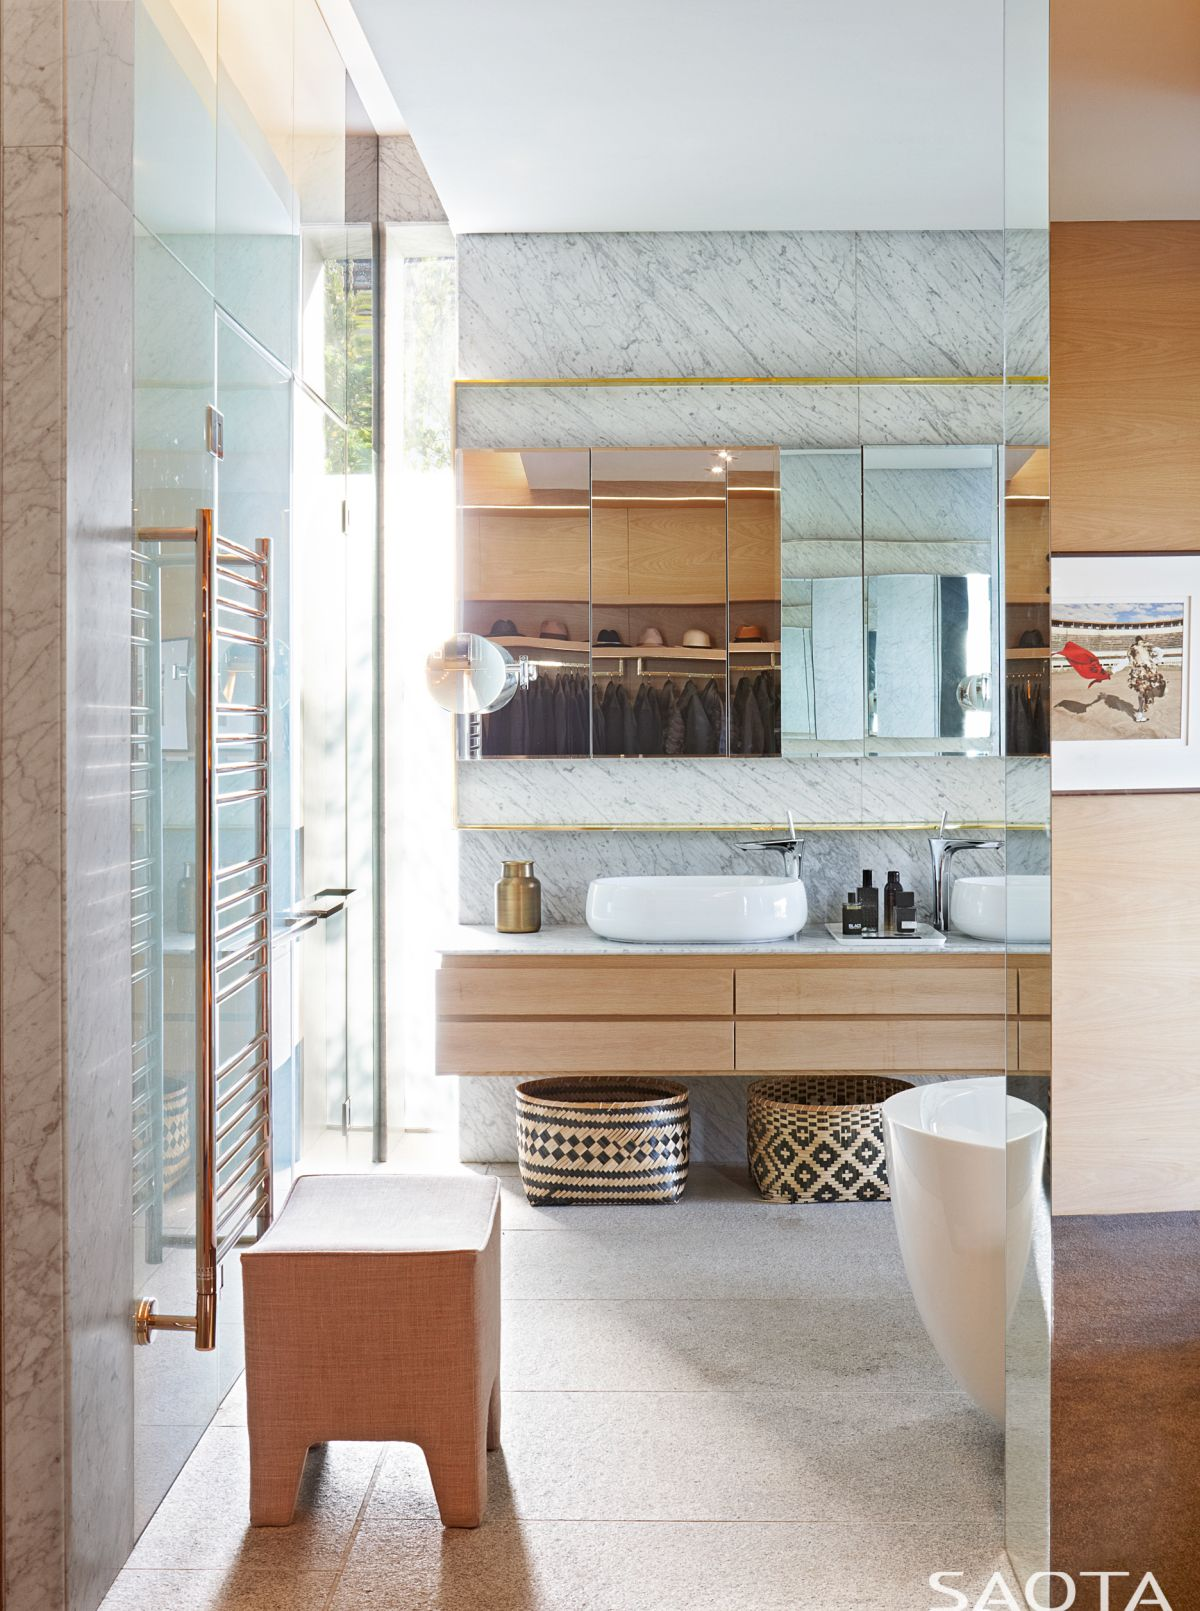 The bathrooms are as stylish as the rest of the house, featuring white marble walls and glass enclosures